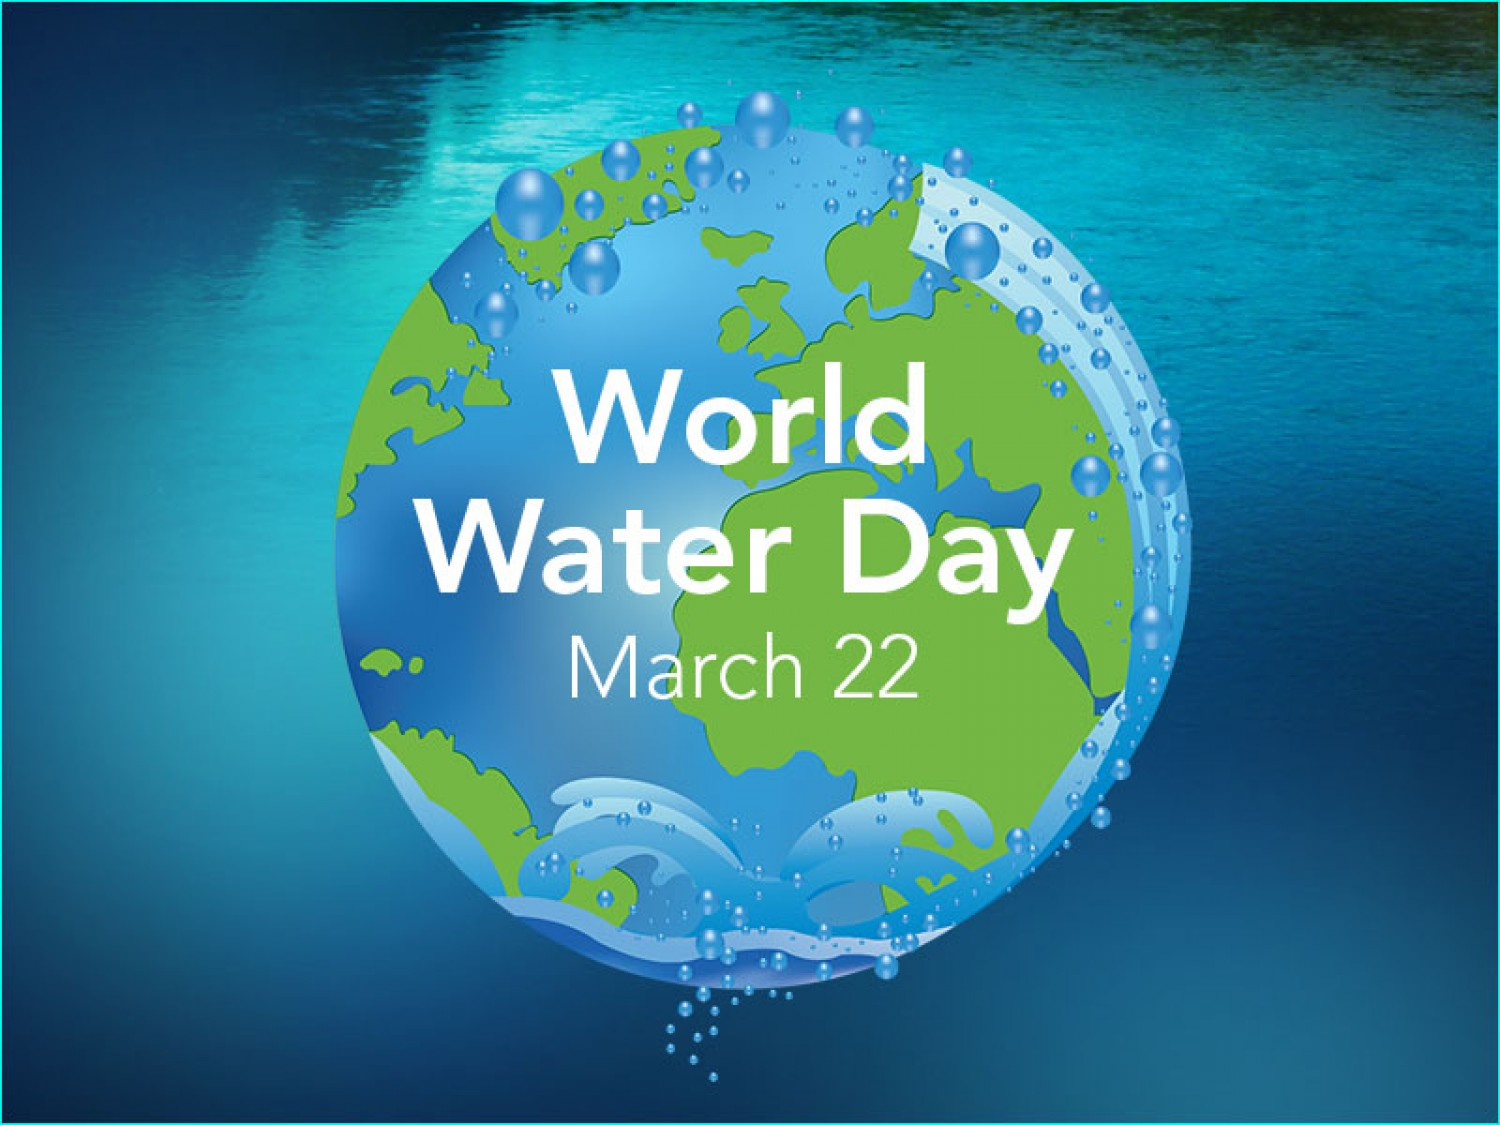 Celebrating World Water Day March 22|Articles | Ryder Rabbit